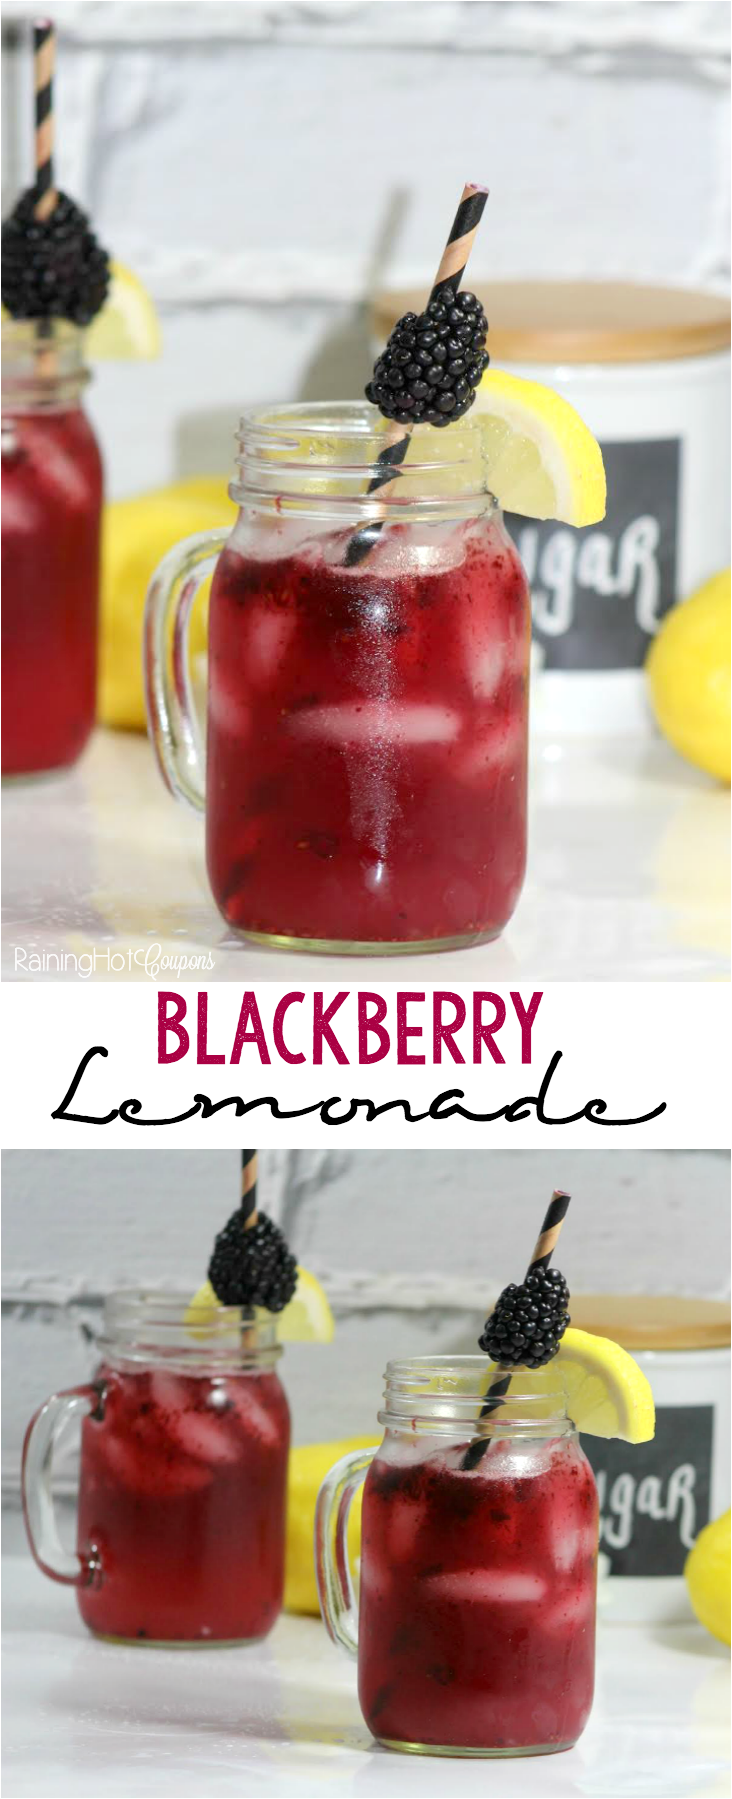 Blackberry Lemonade - This is a super refreshing and tasty summer drink recipe.